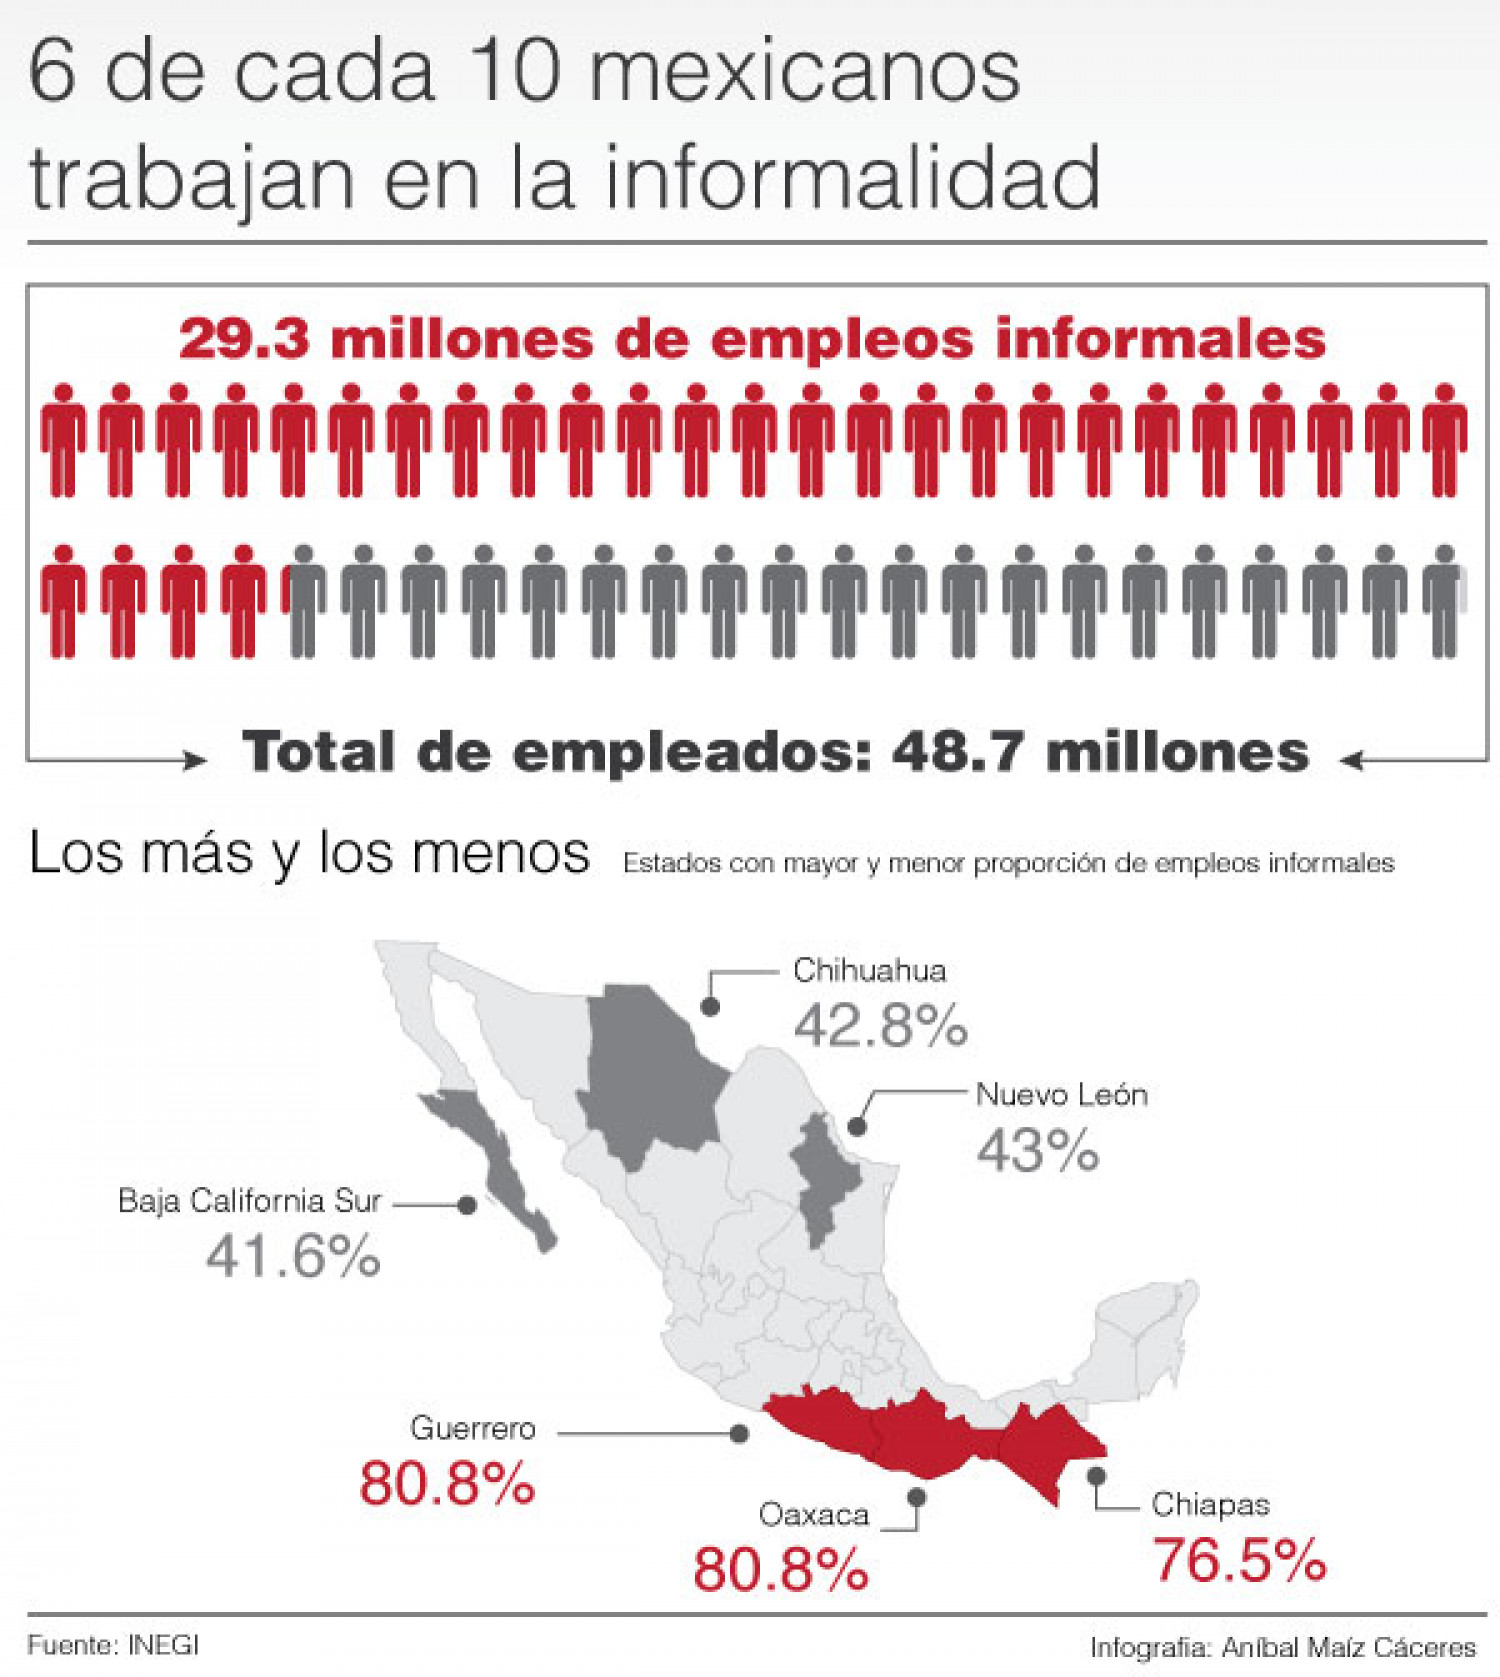 Informal work in Mexico Infographic